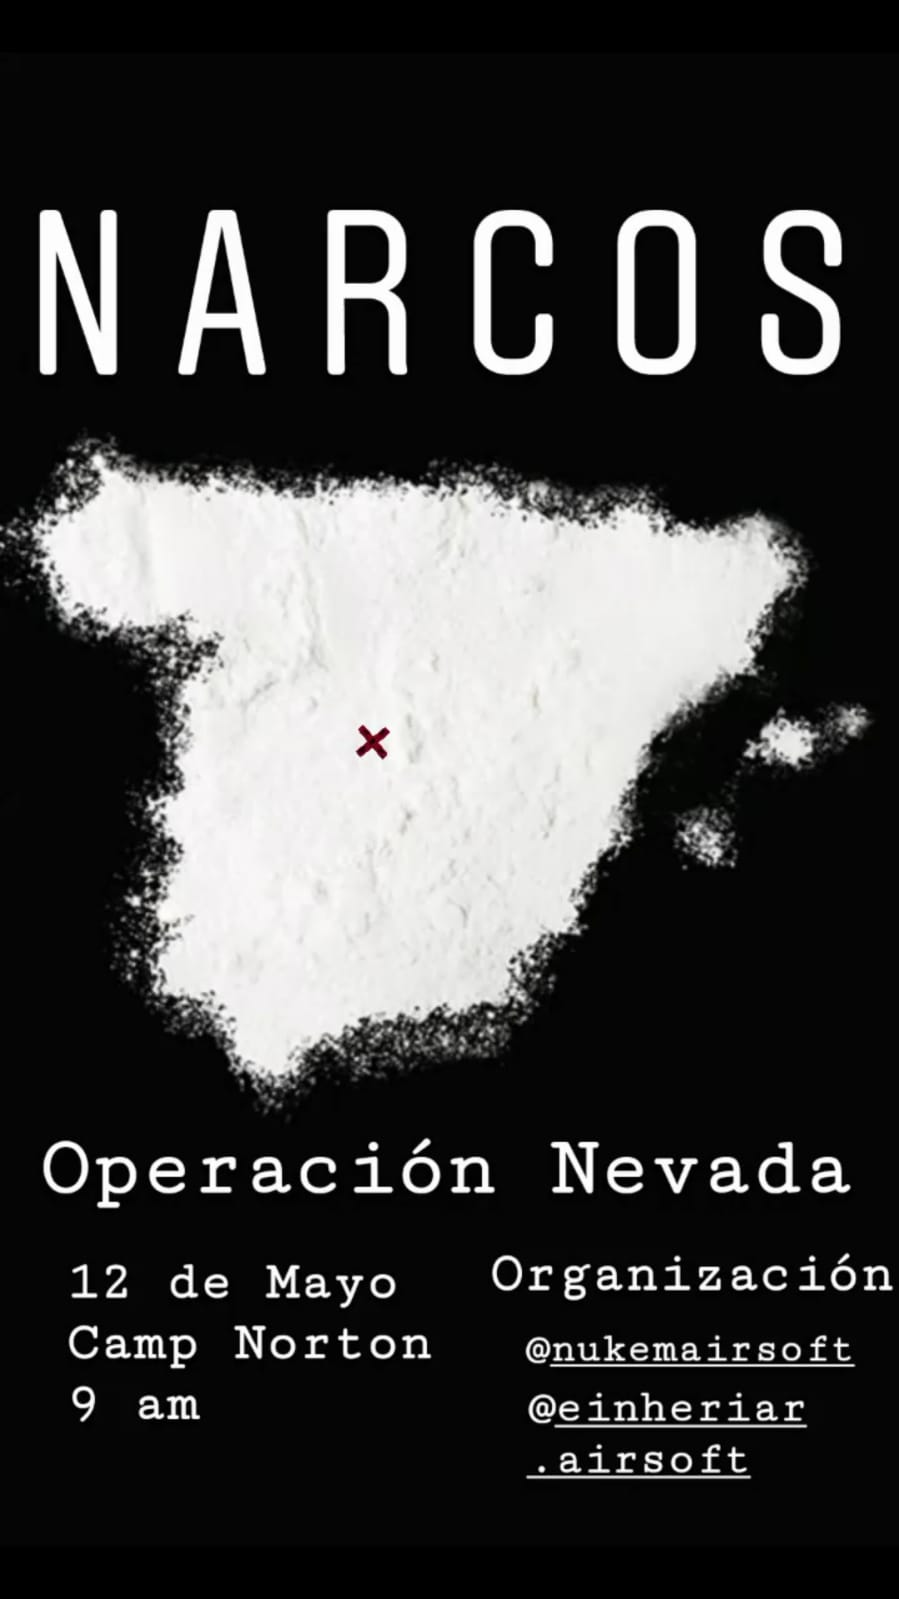 Narcos Domingo 12 Mayo 2019 By Nukemairsoft & eriheriar.airsoft Narcos10